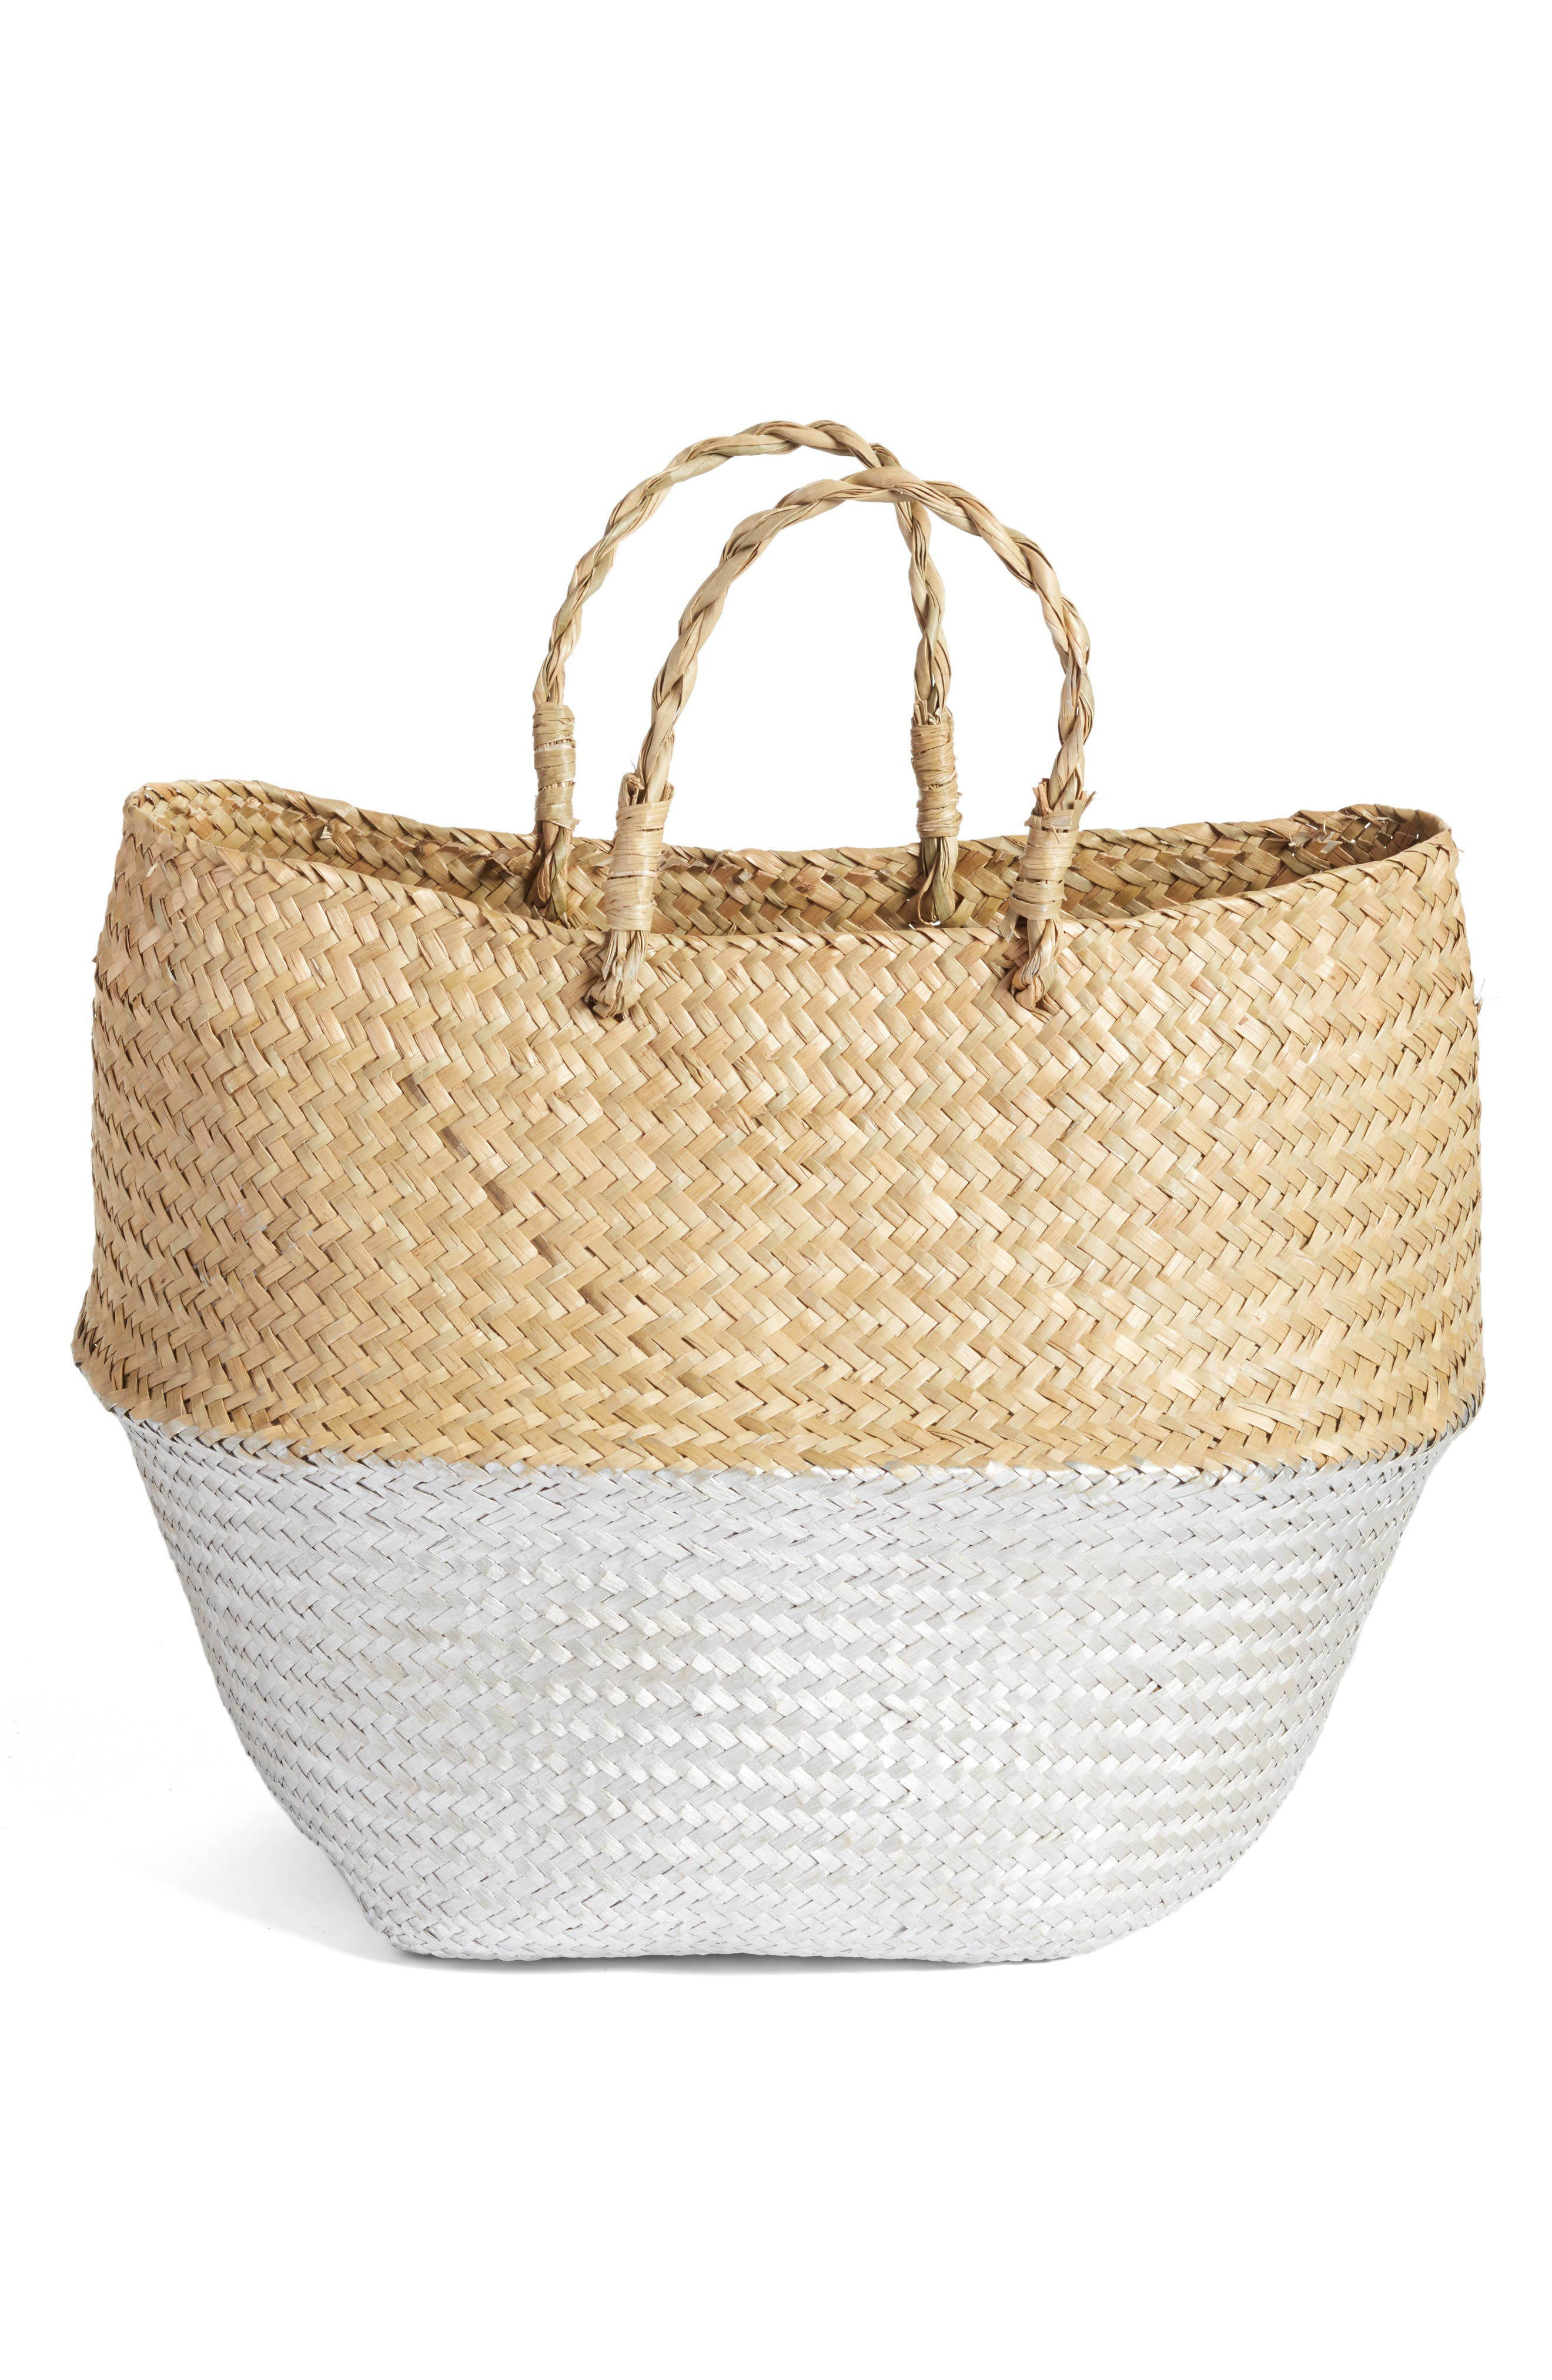 Two-Tone Metallic Straw Basket,                             Main thumbnail 1, color,                             040